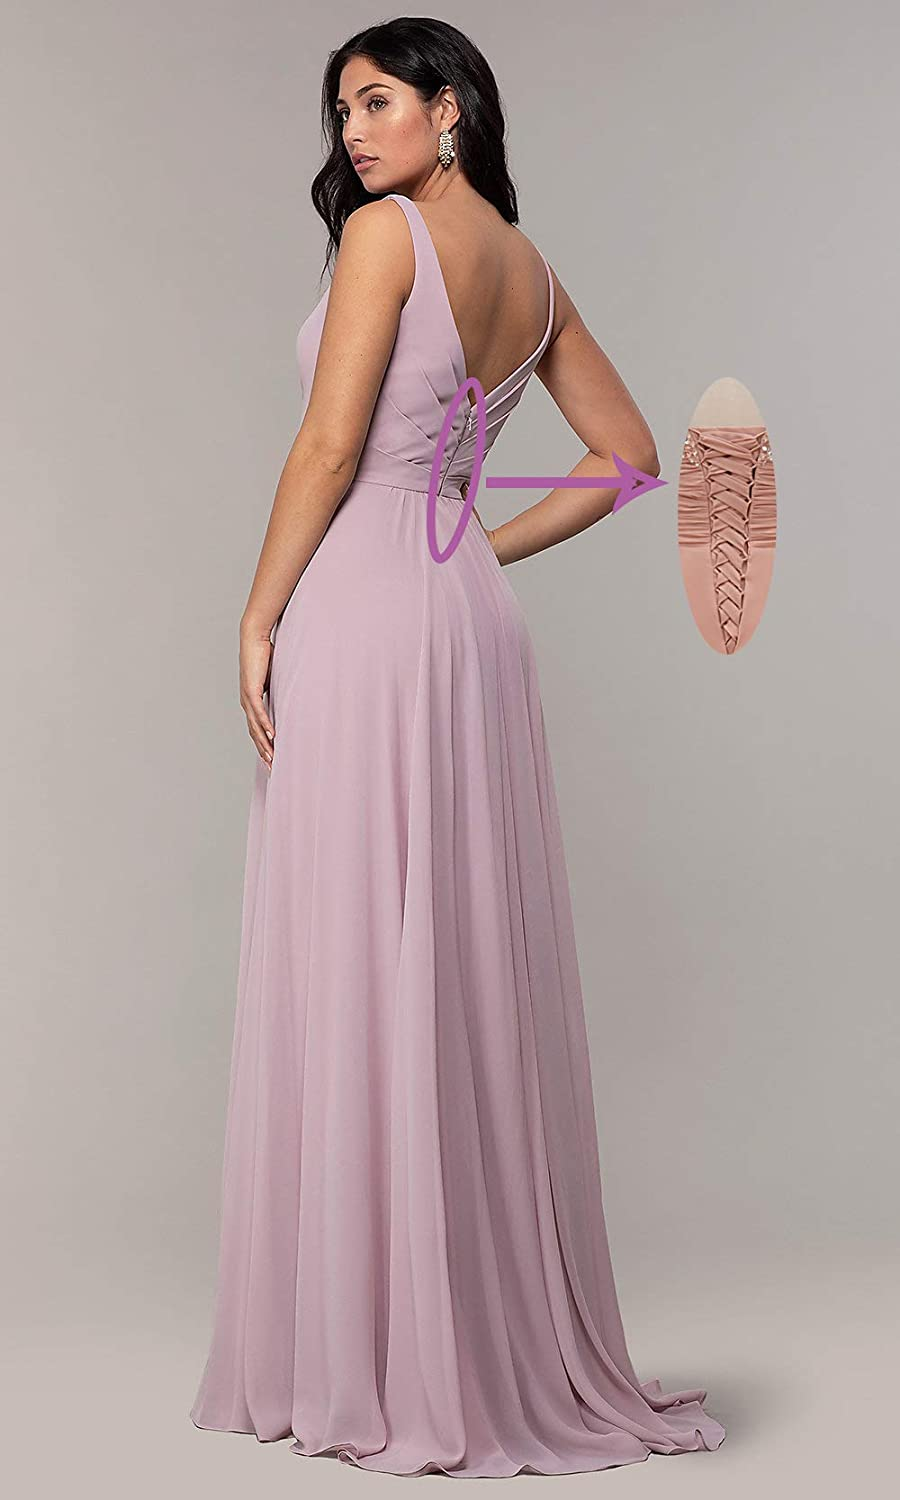 Beauty Bridal Womens V Neck Chiffon A Line Ruched Bridesmaid Dress Long Evening Prom Party Formal Gown Z44